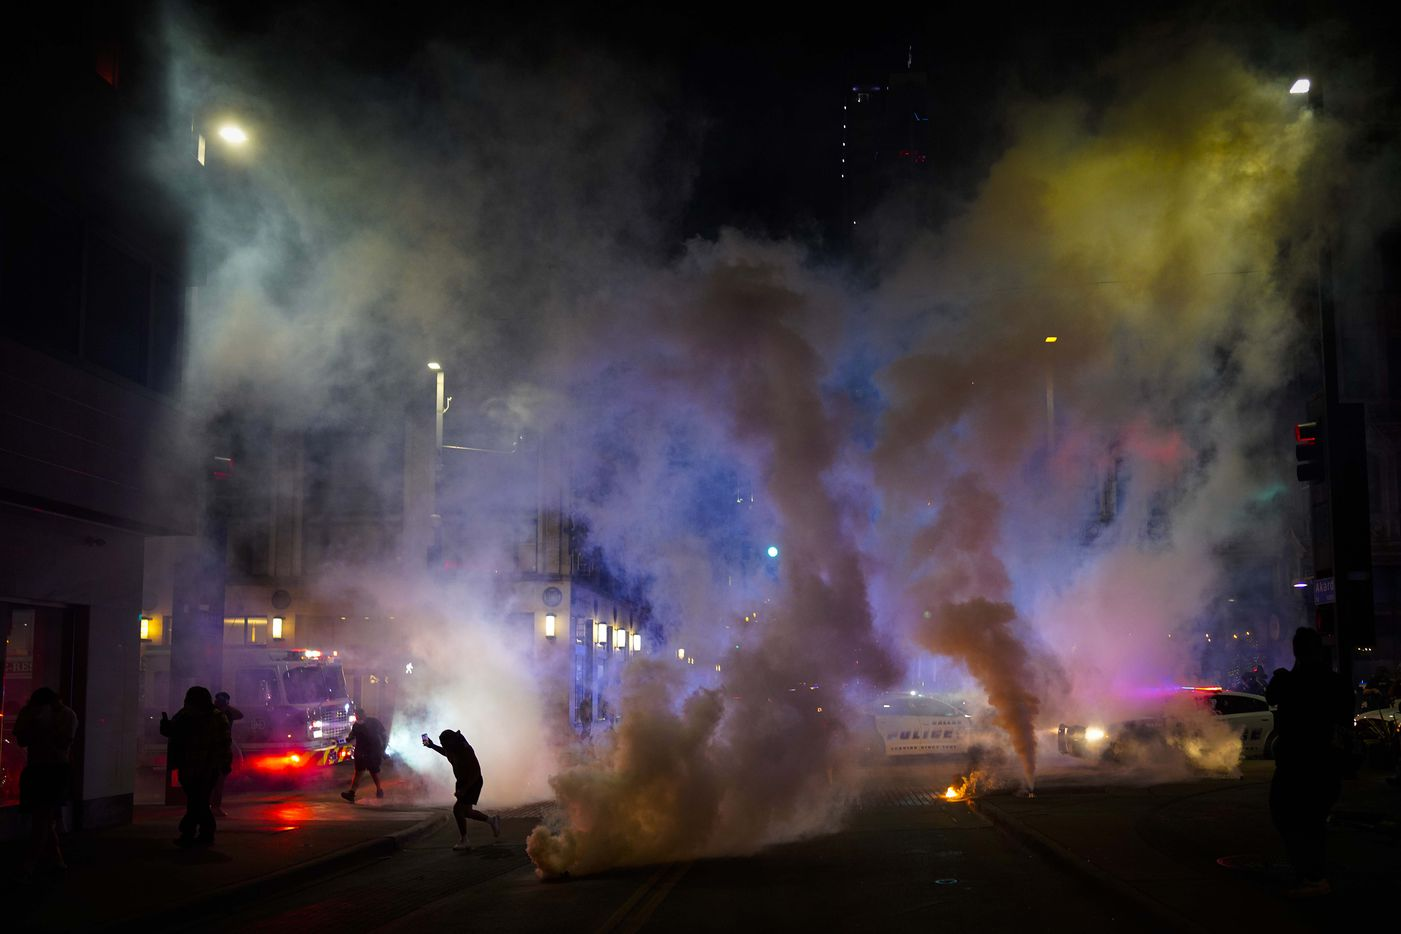 Teargas is deployed by Dallas police to disperse a group of people at the corner of Akard and Main Streets downtown following a protest against police brutality in the early morning hours of Saturday, May 30, 2020, in Dallas.